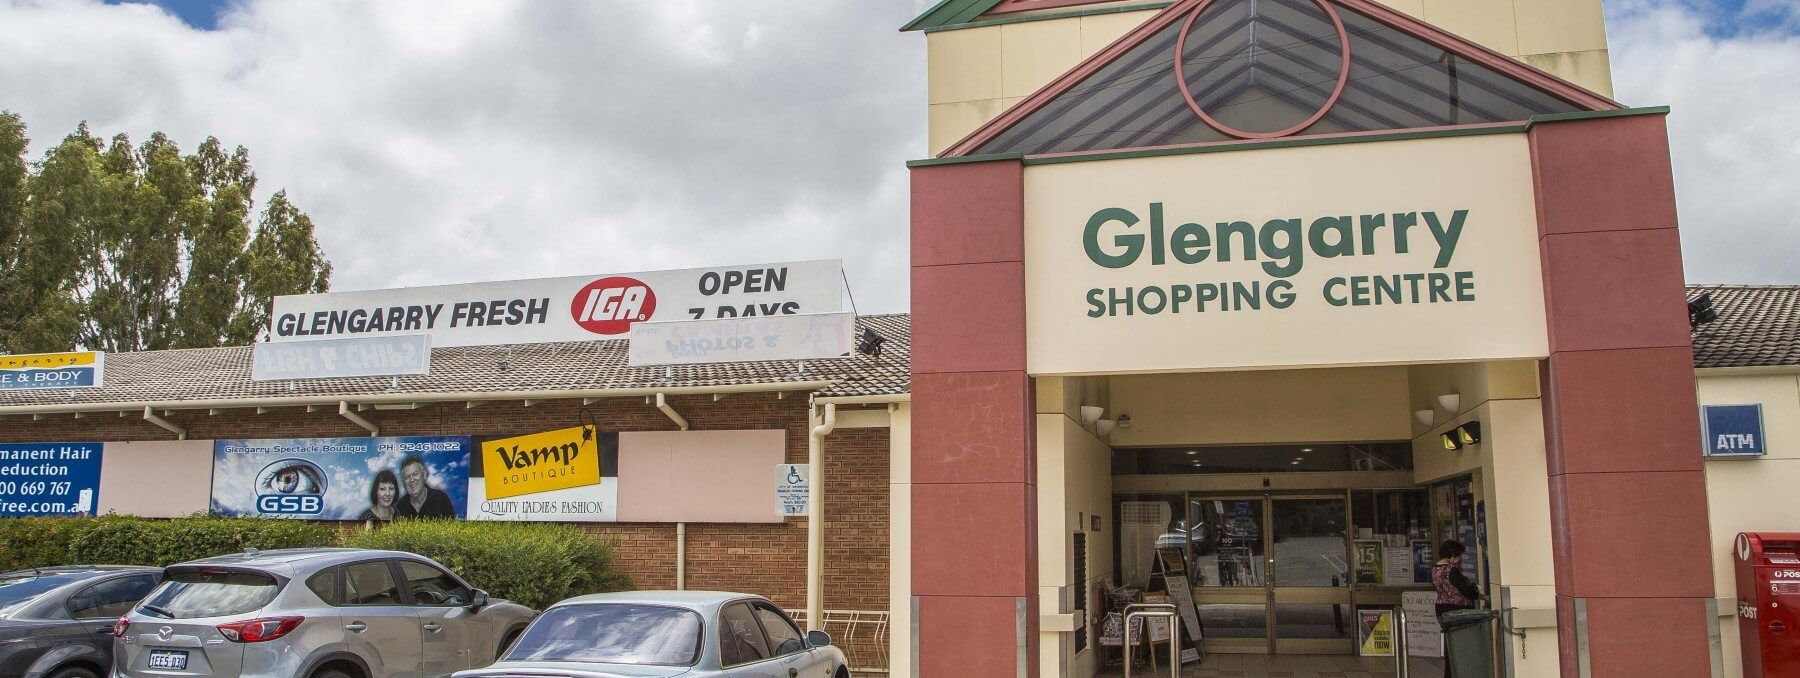 See whats new at Glengarry Shopping Centre